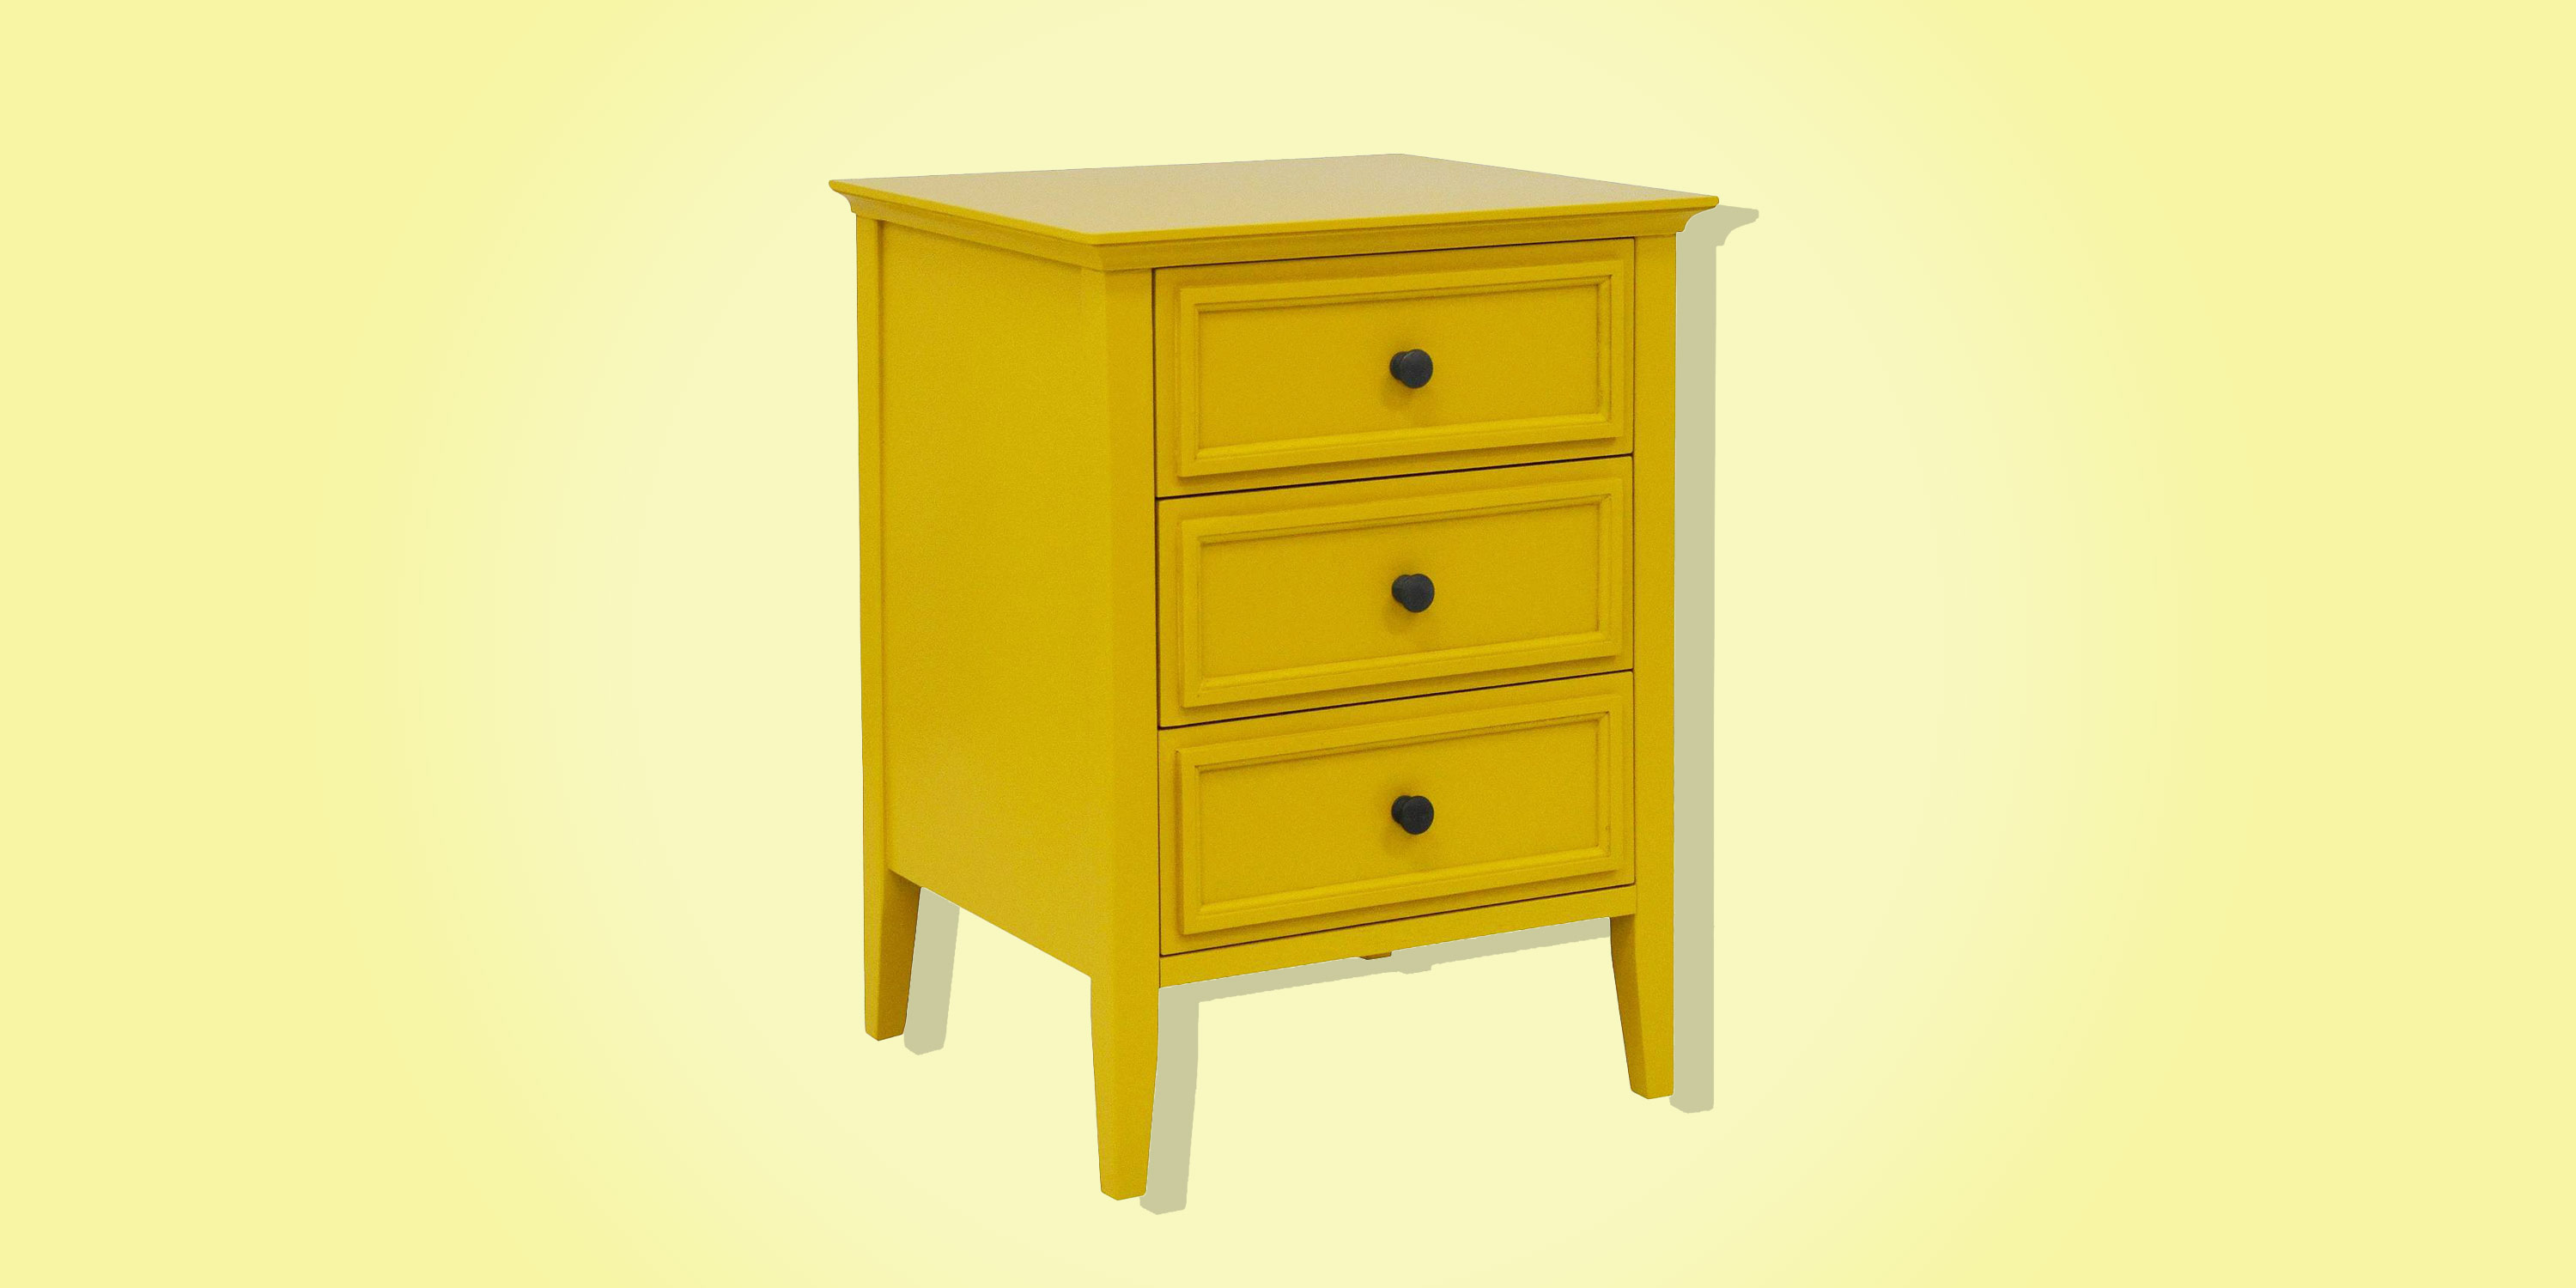 best bedside table from target end lede elkton three drawer this bright yellow nightstand bit garish but love whalen furniture coffee big lots throws ashley dining room marble